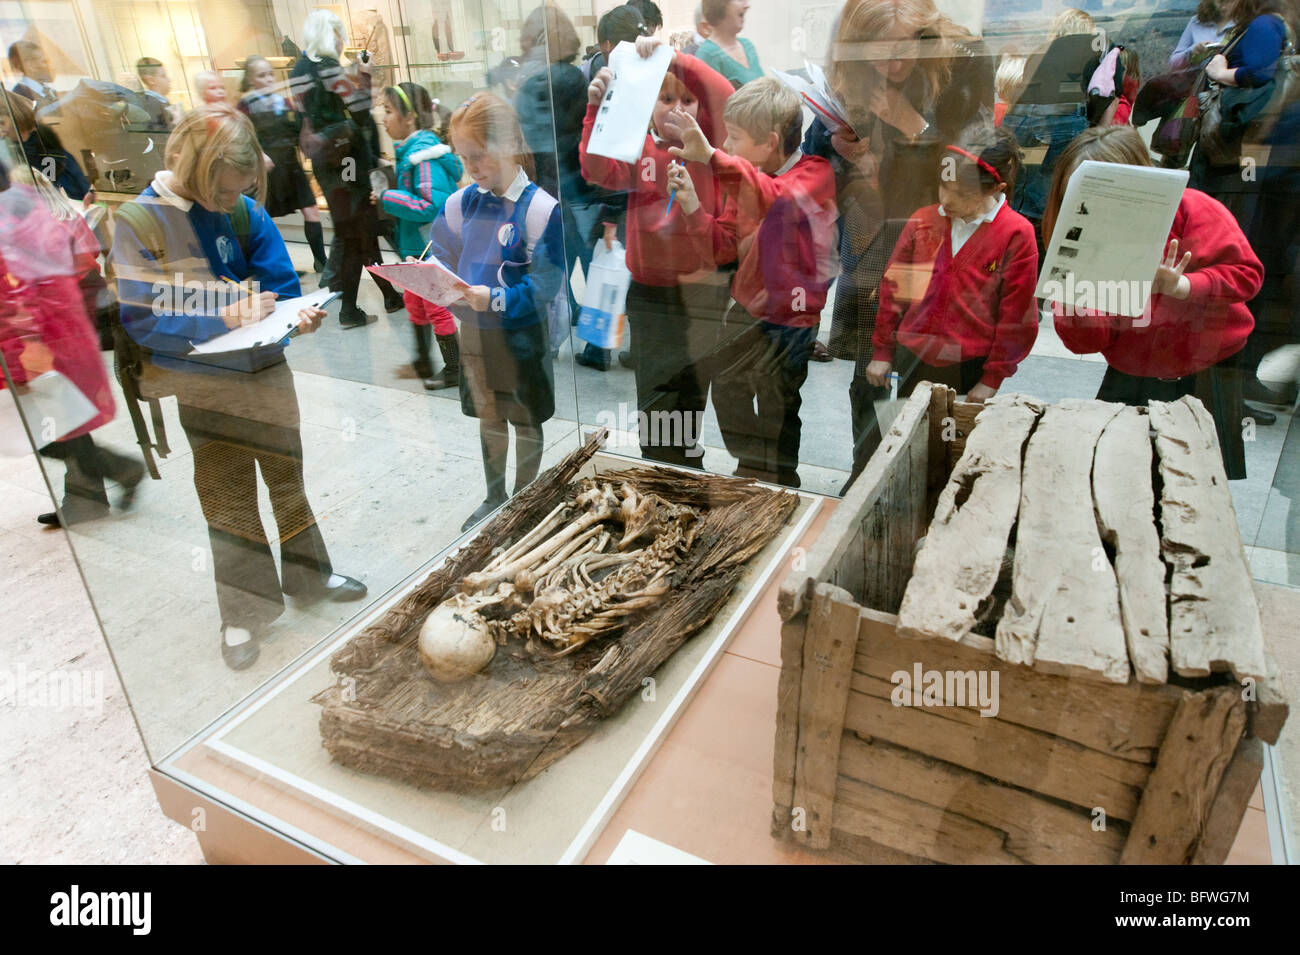 Children on educational school trip to the Egyptian rooms of the British Museum, London, England, Britain, UK - Stock Image